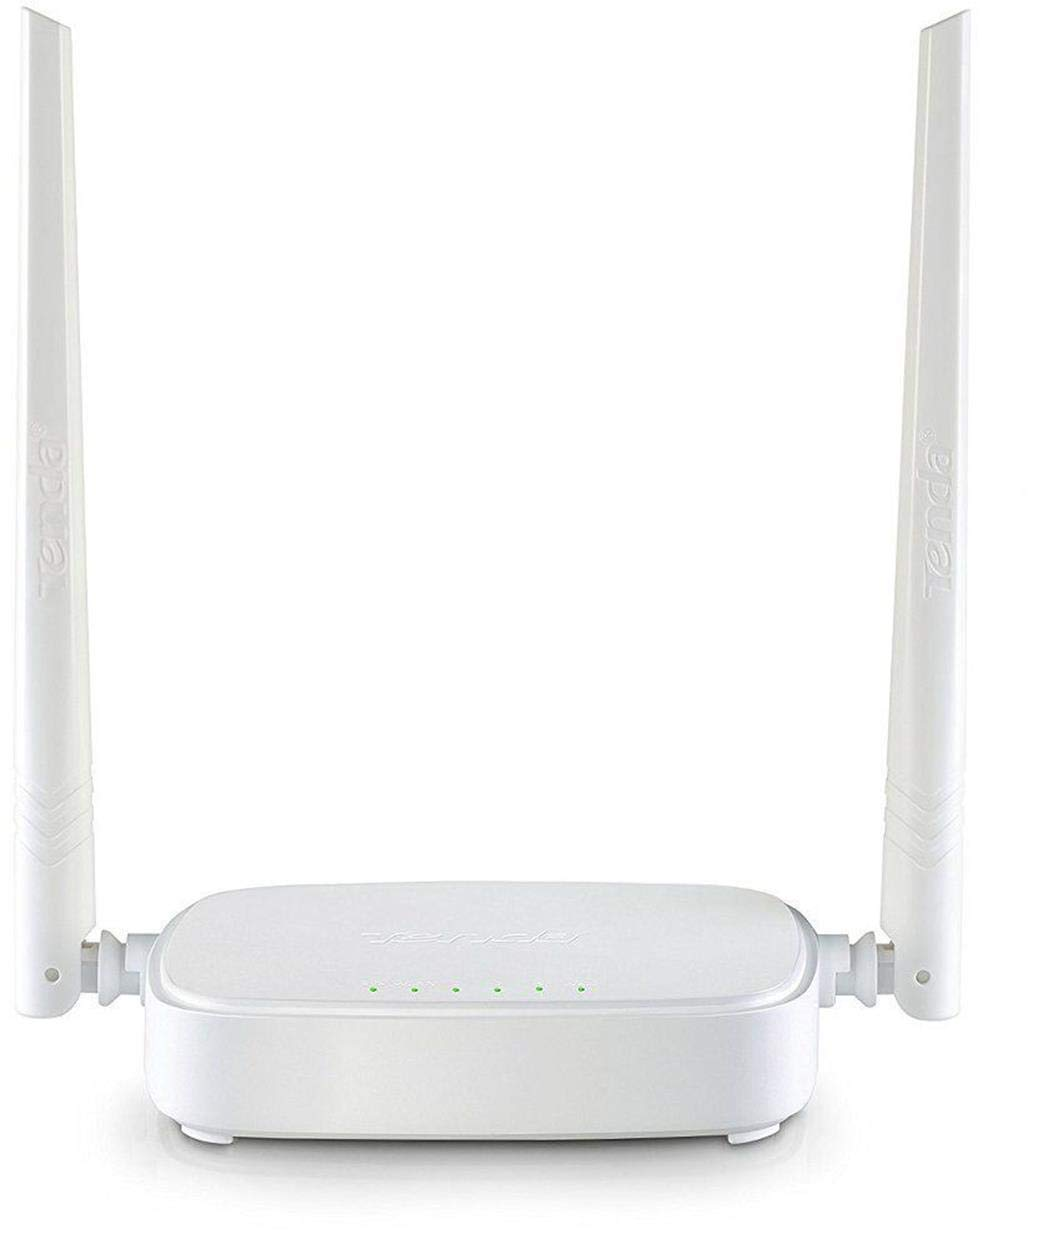 Tenda N301 - Router WiFi (300 Mbps) color blanco